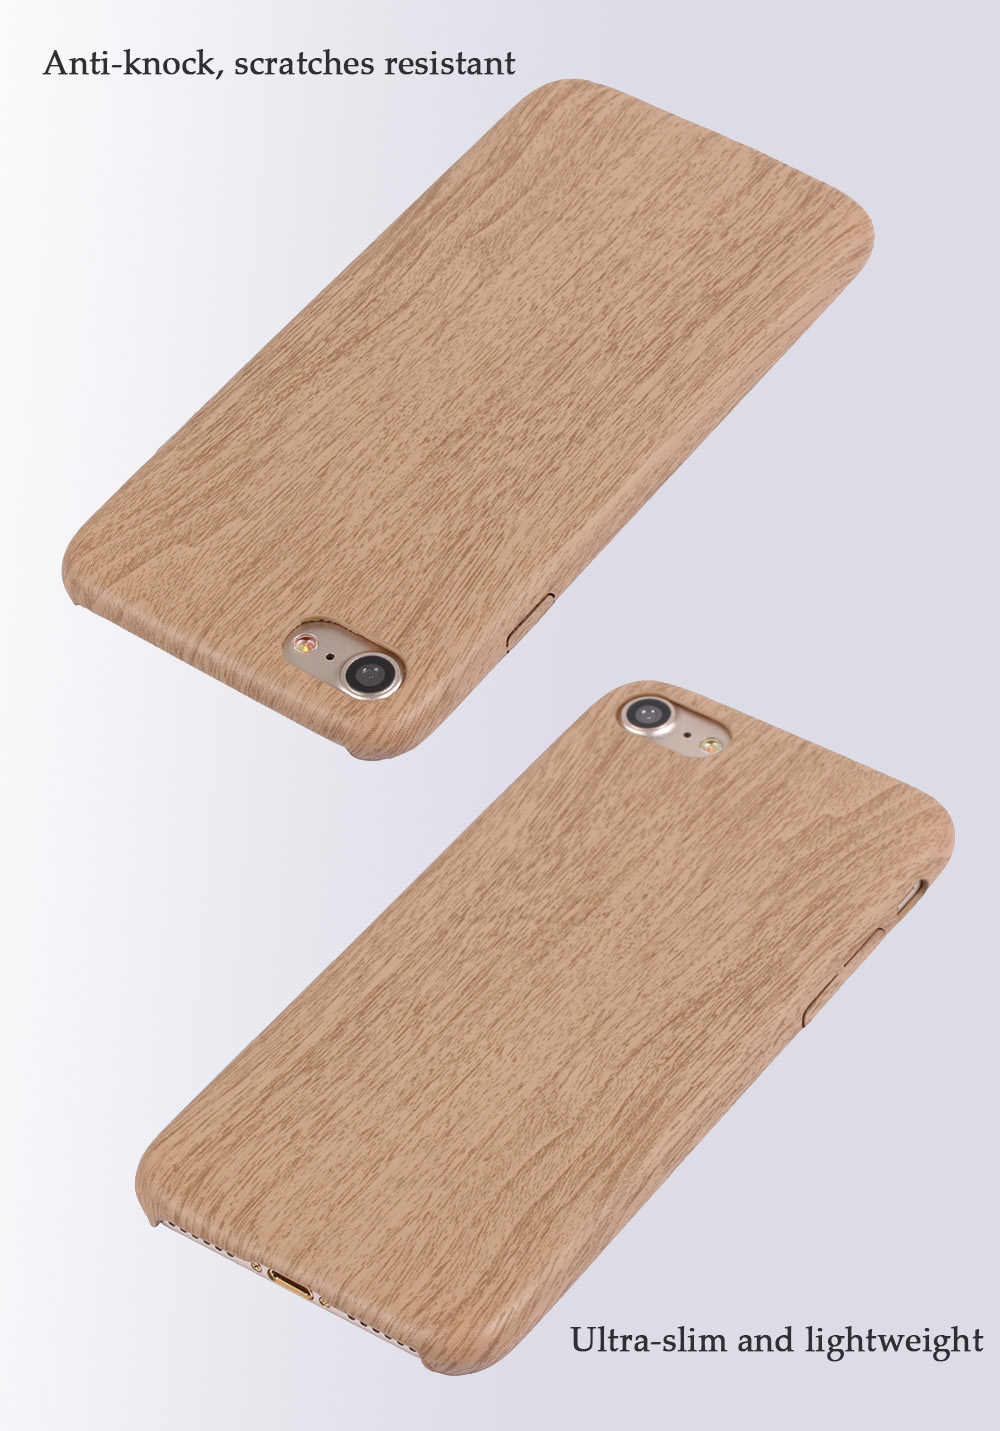 Luanke PU Leather Ultra-thin Matte Surface Protective Phone Back Case with Wood Grain for iPhone 7